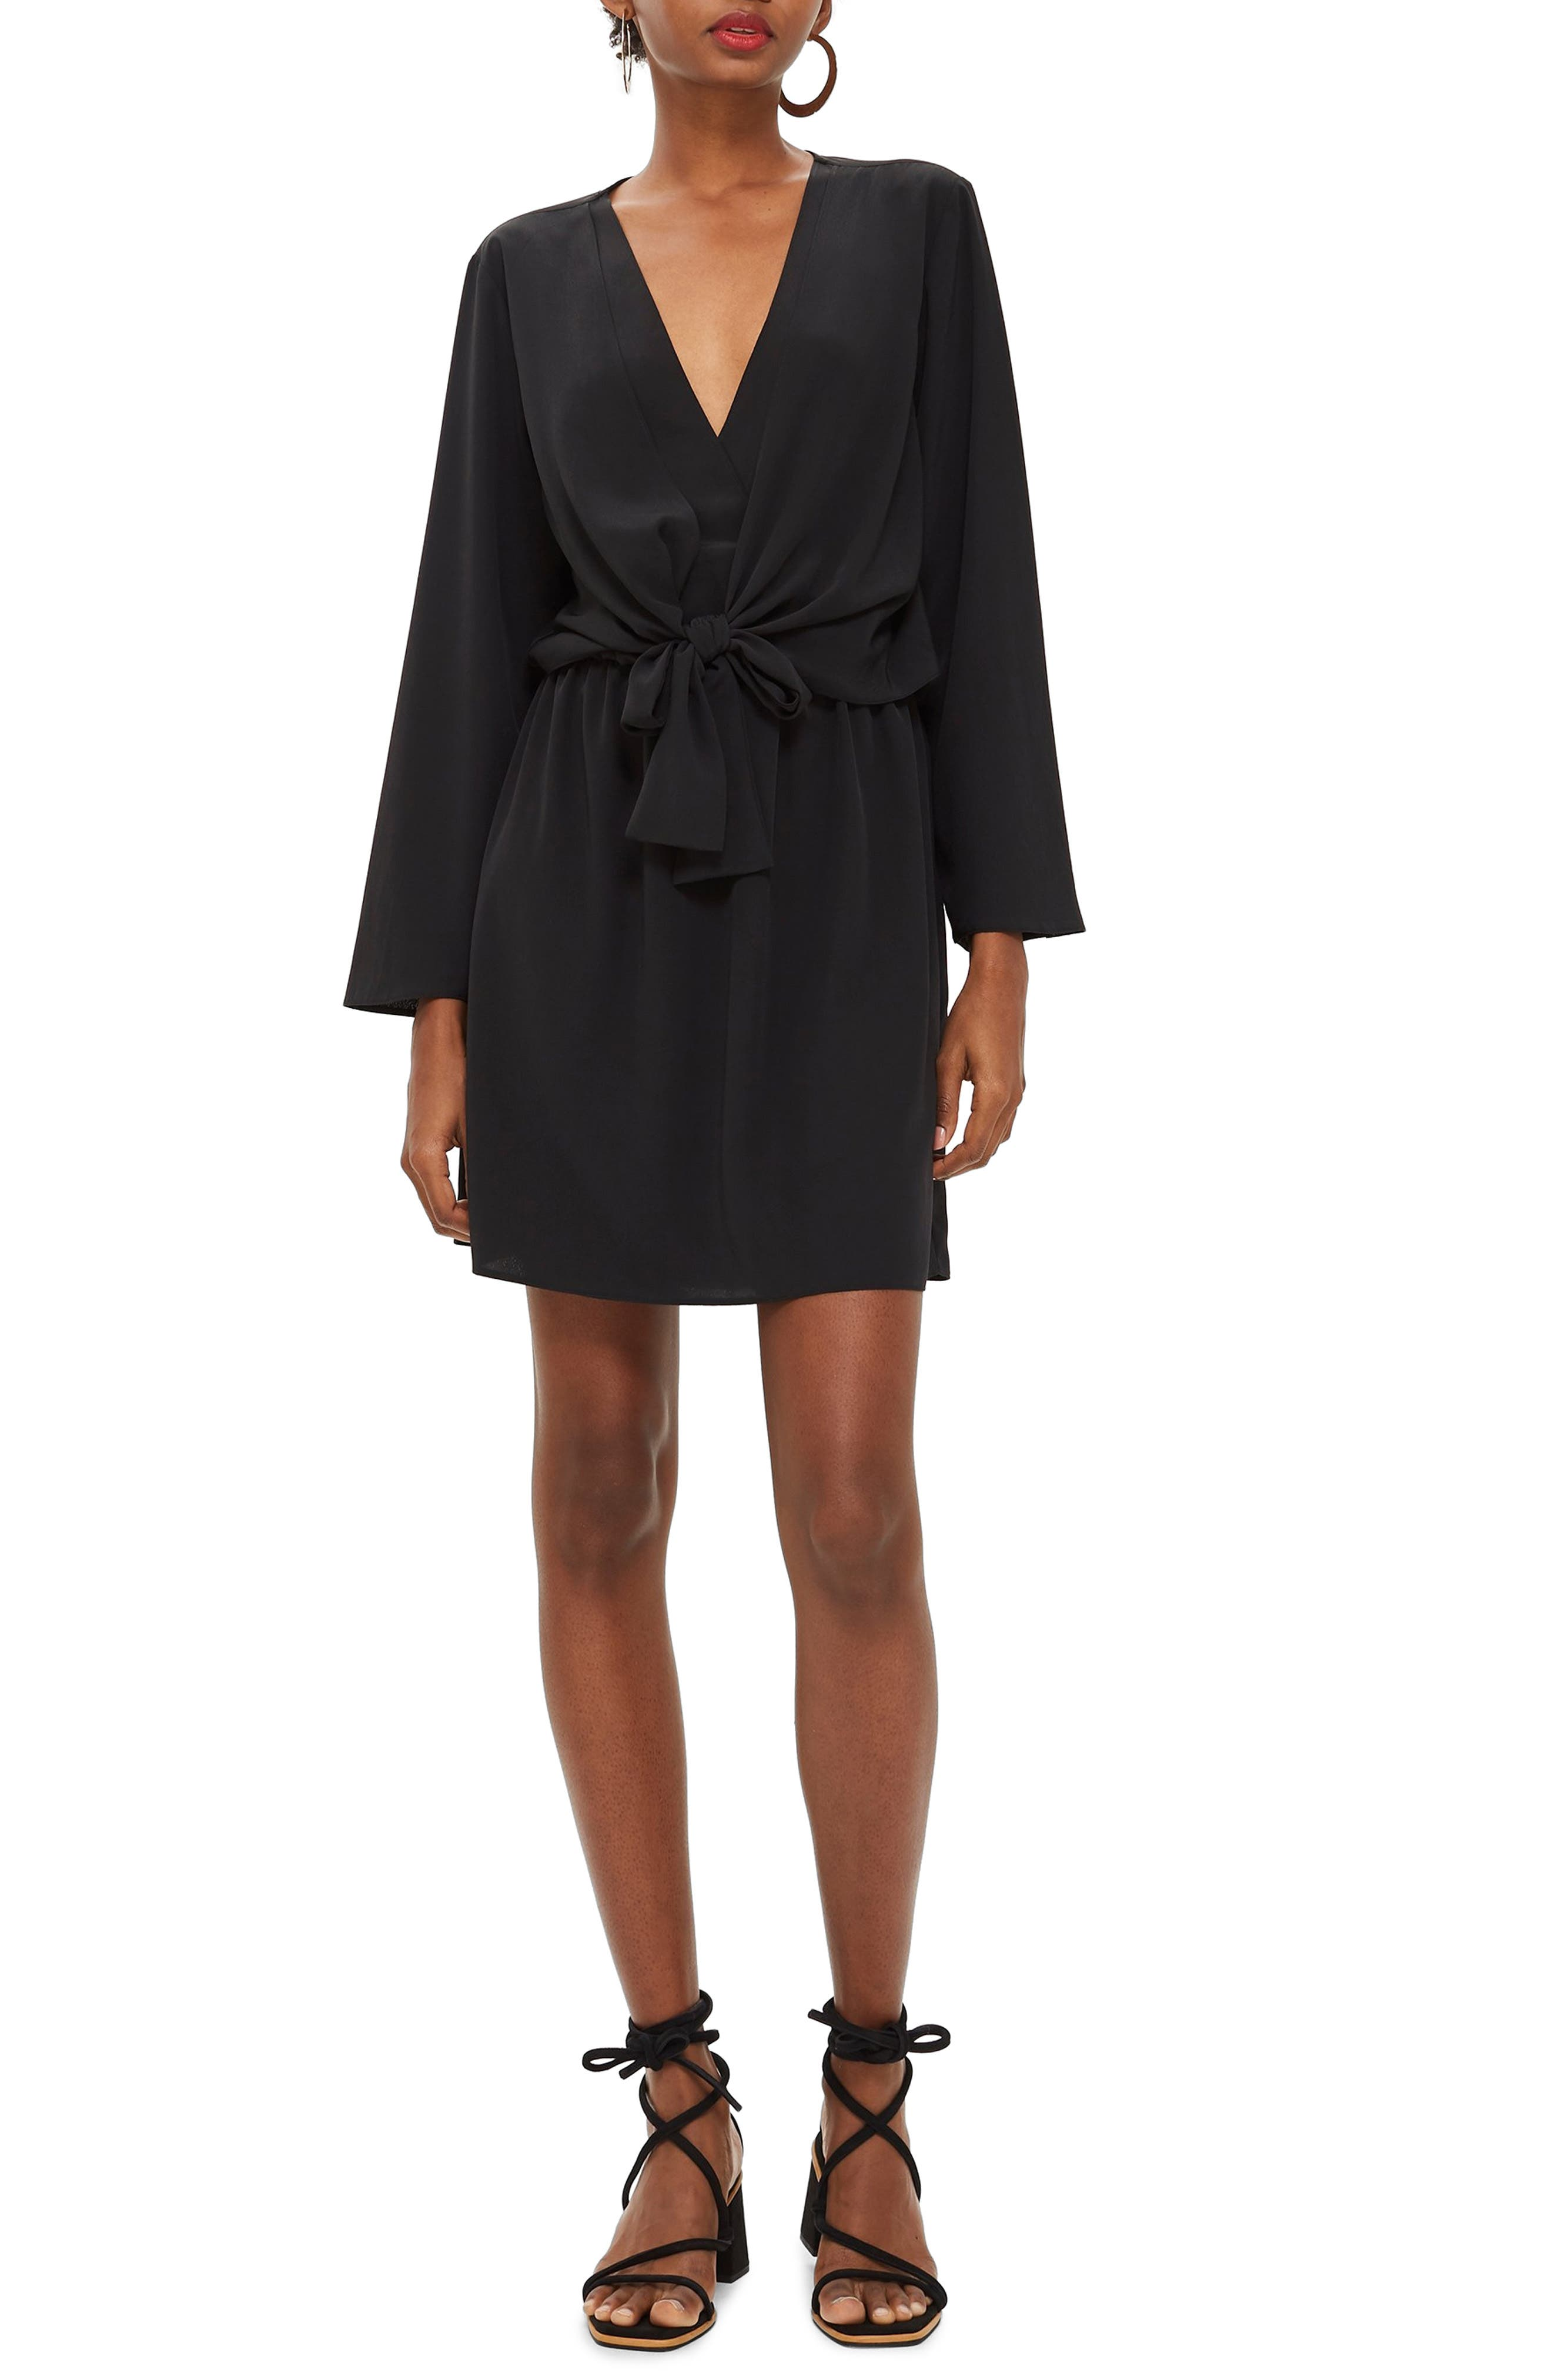 Tiffany Knot Minidress,                             Main thumbnail 1, color,                             BLACK